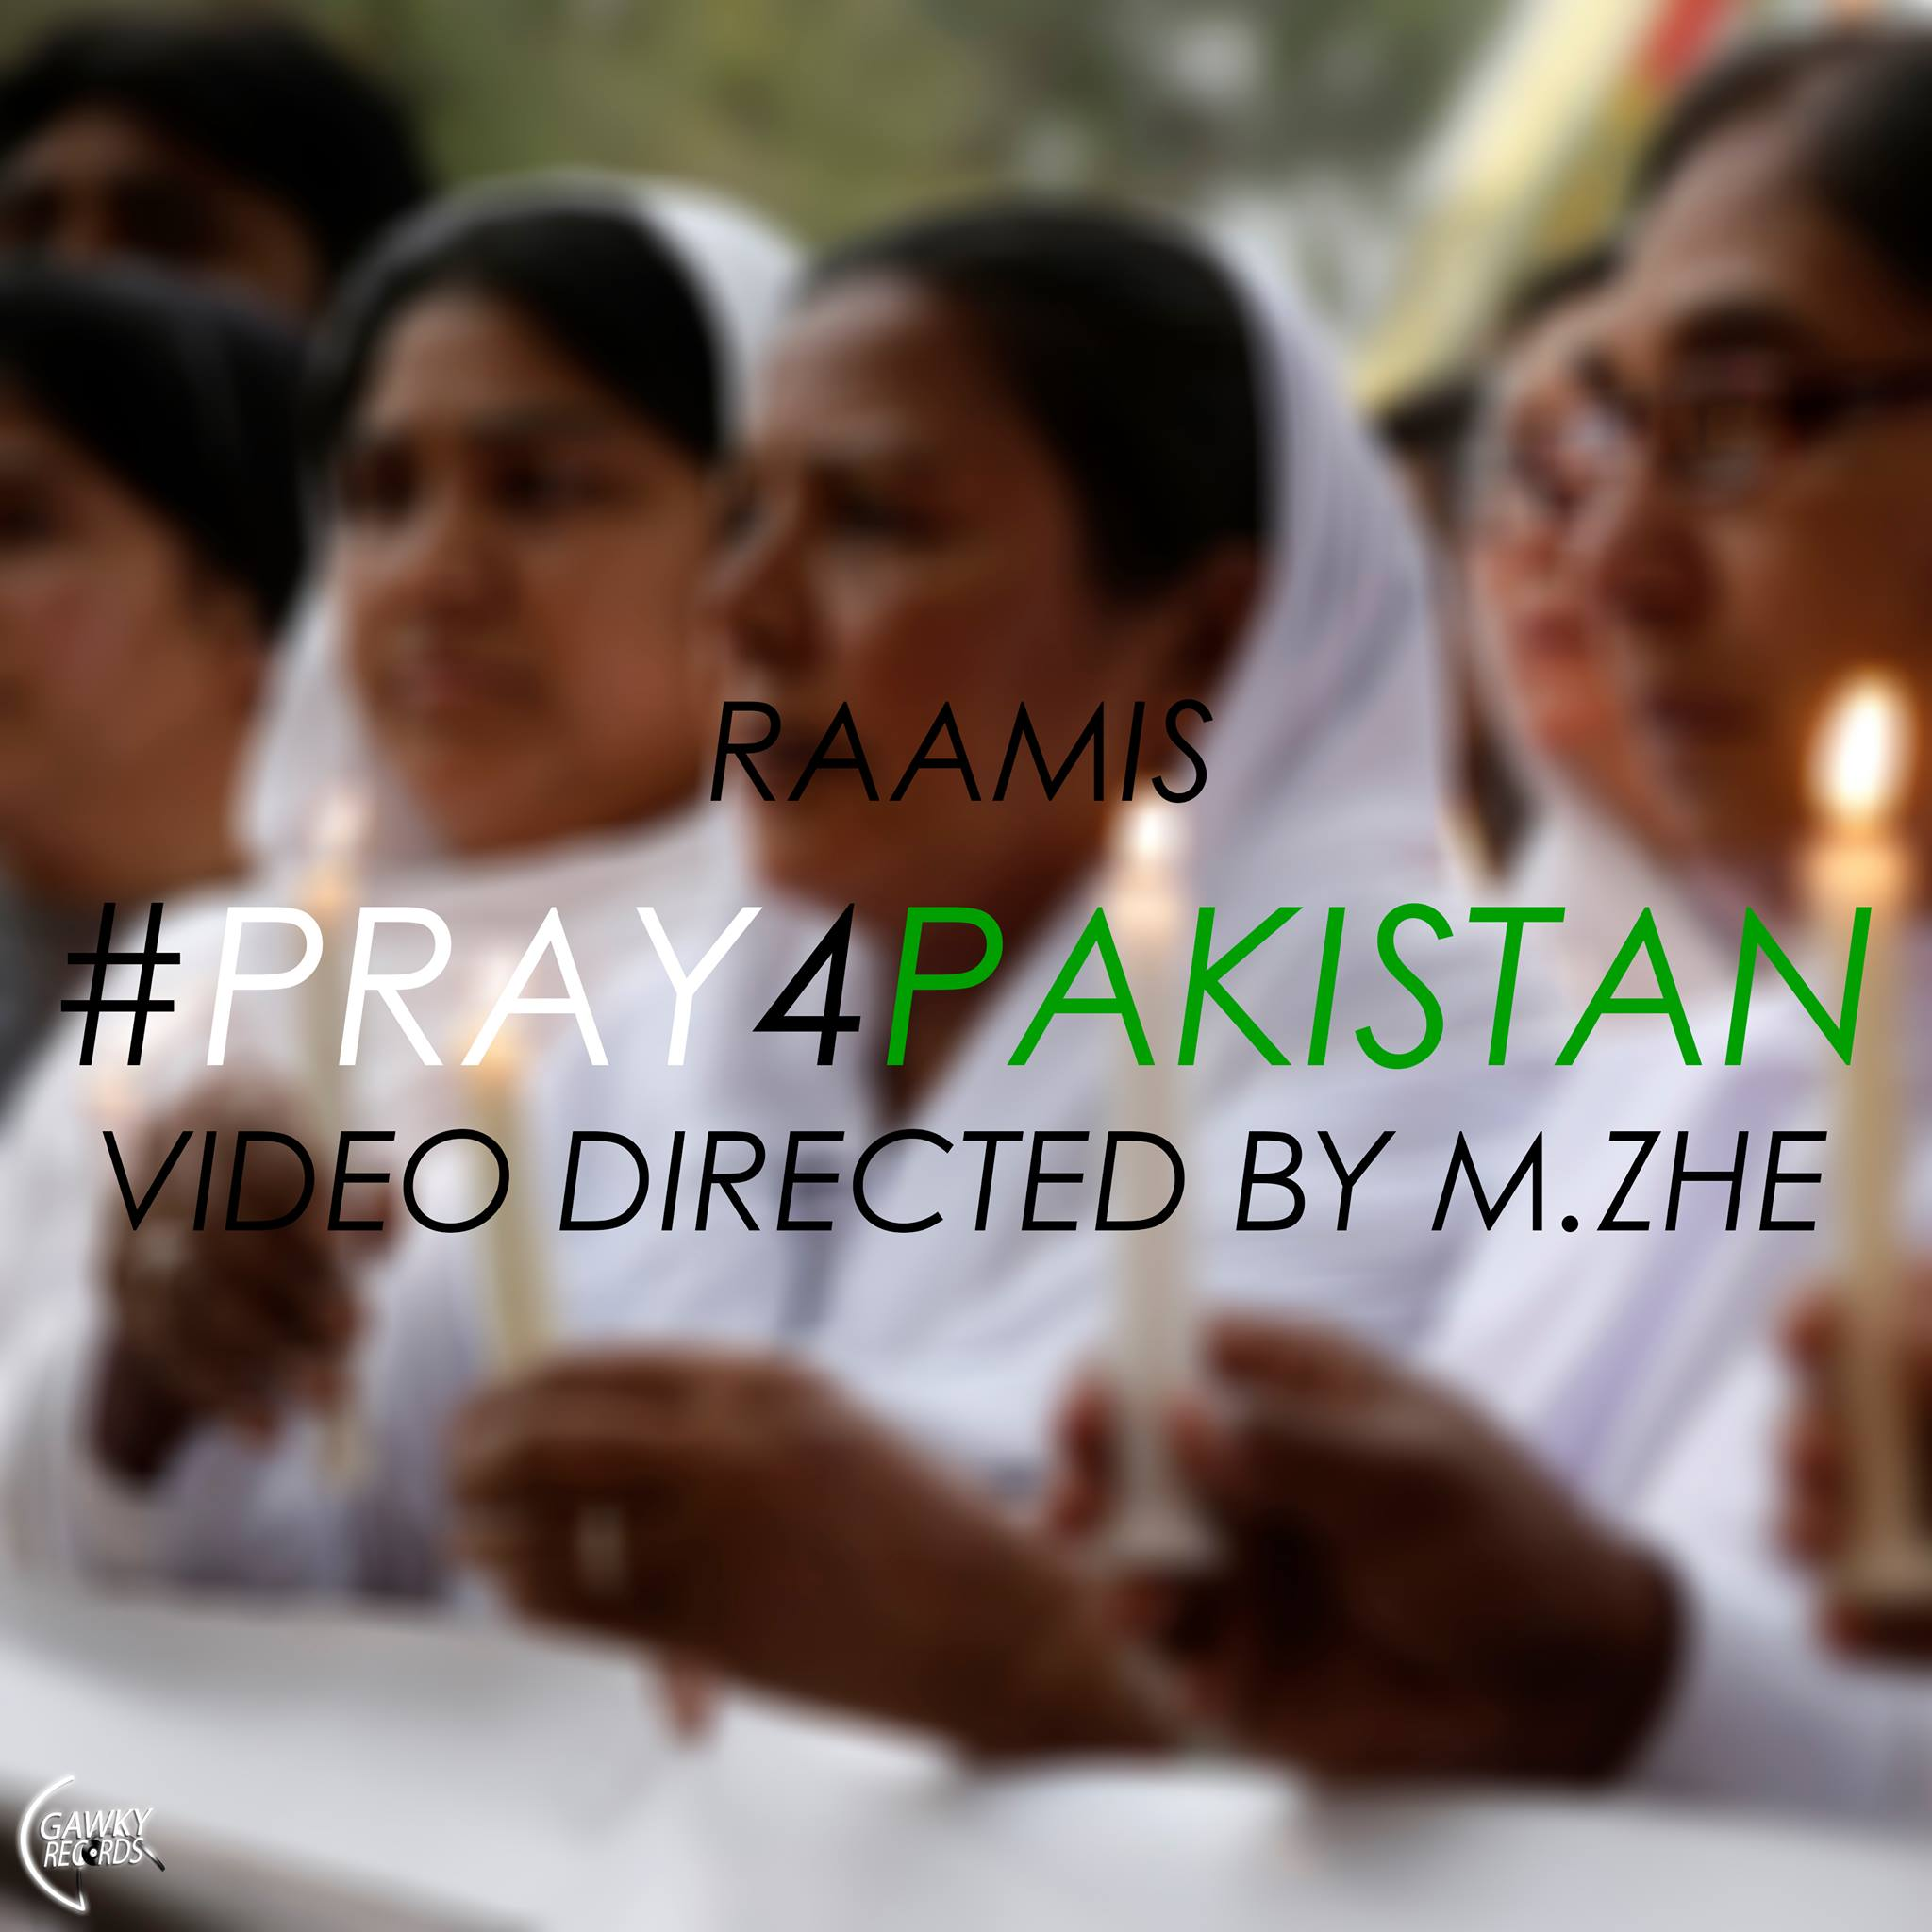 #PRAY4PAKISTAN RAAMIS m.zhe gawky records